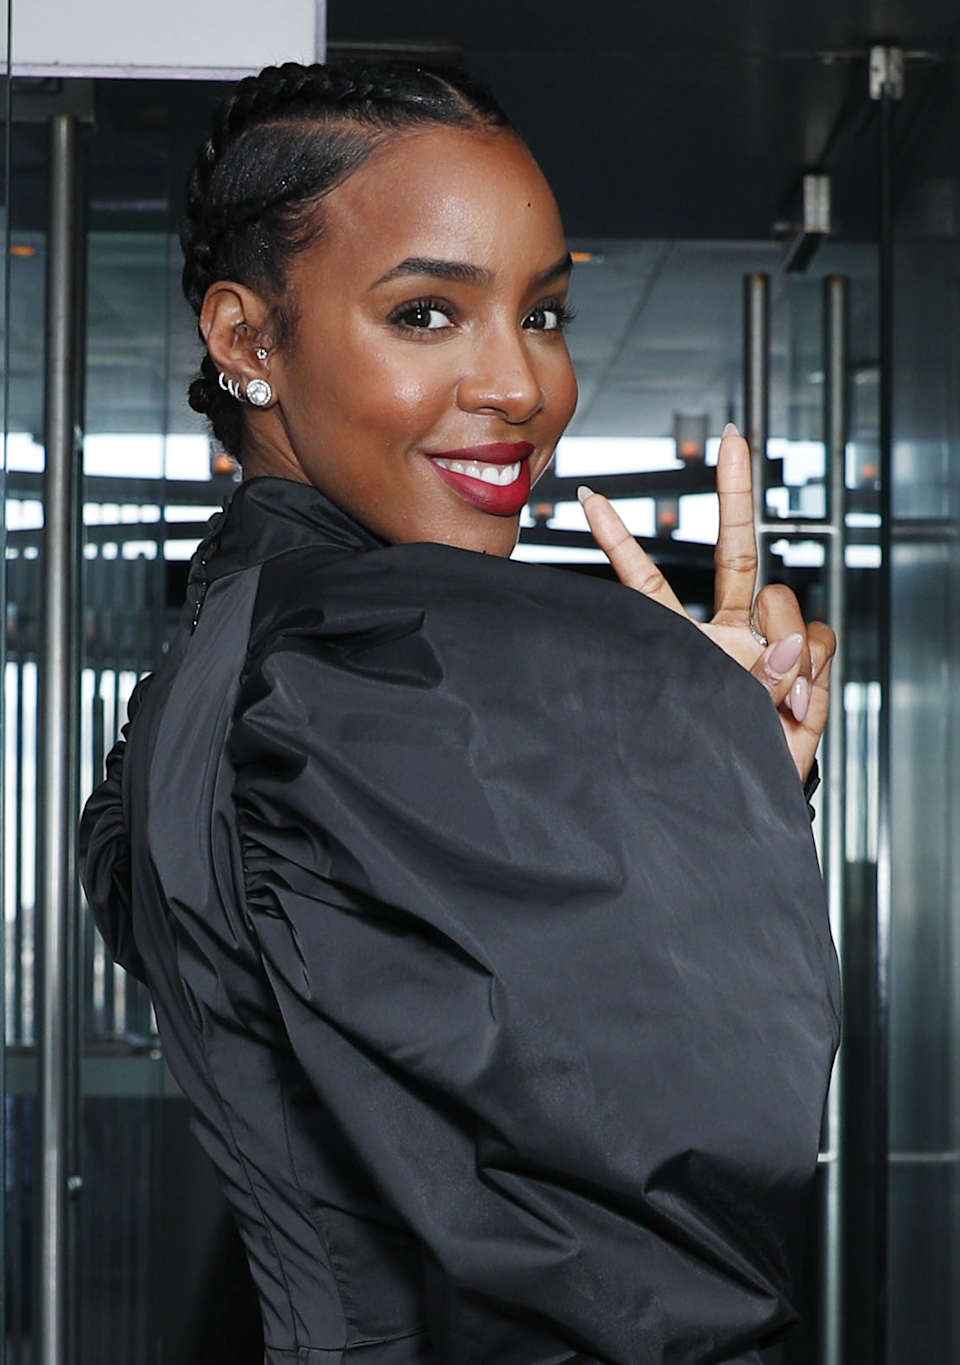 Sleek goddess braids keep the focus on your face. Kelly Rowland's hair is glam and low-maintenance at the same time.